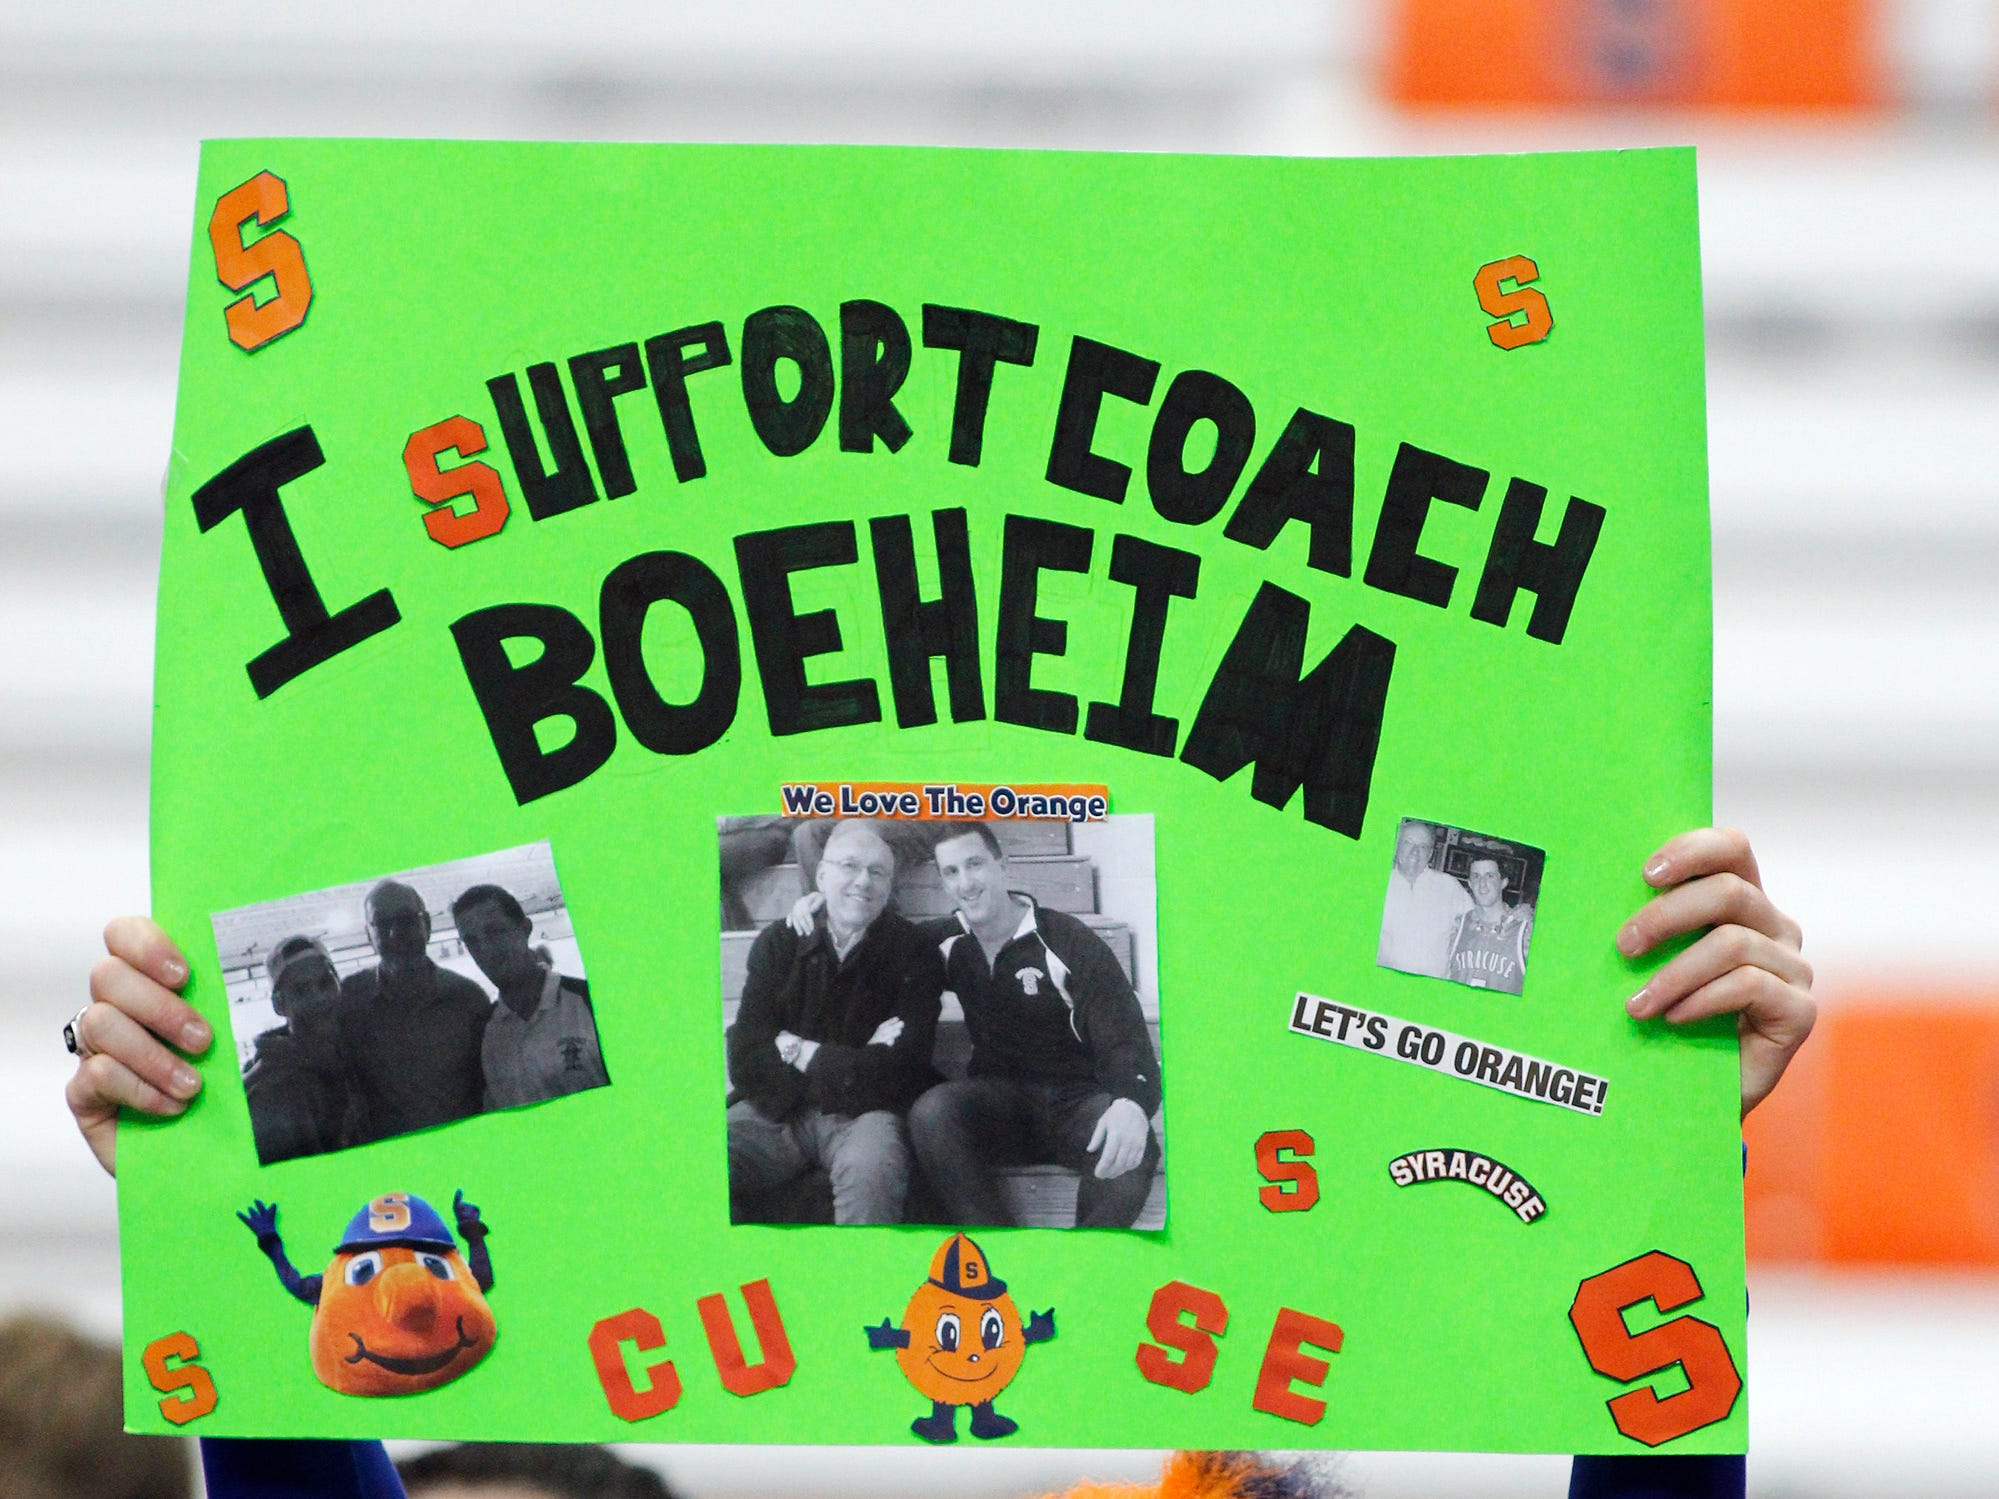 2015: Sean Madden of Oswego, N.Y. holds a sign in support of Syracuse head coach Jim Boeheim before an NCAA college basketball game Syracuse against Montana State in Syracuse, N.Y., Tuesday, Dec. 22, 2015. (AP Photo/Nick Lisi)